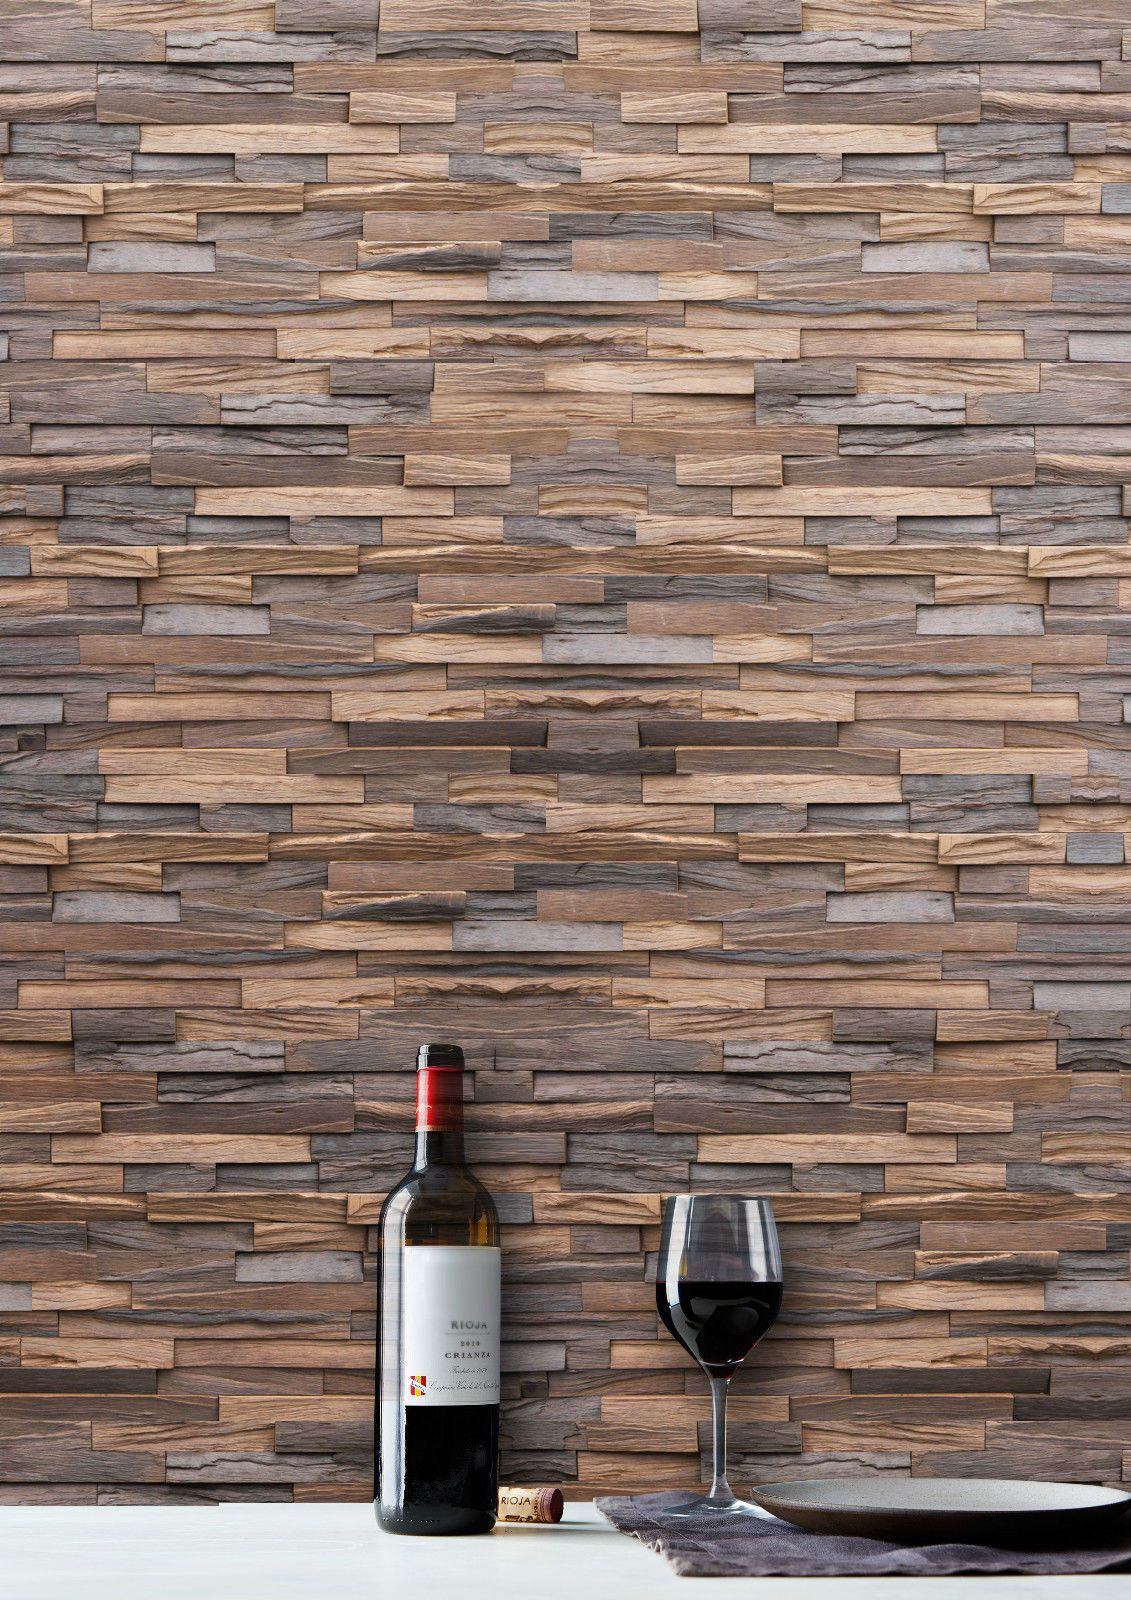 Heartwood timber wall cladding tiles slips huis pinterest wall cladding tiles for Wooden cladding for exterior walls